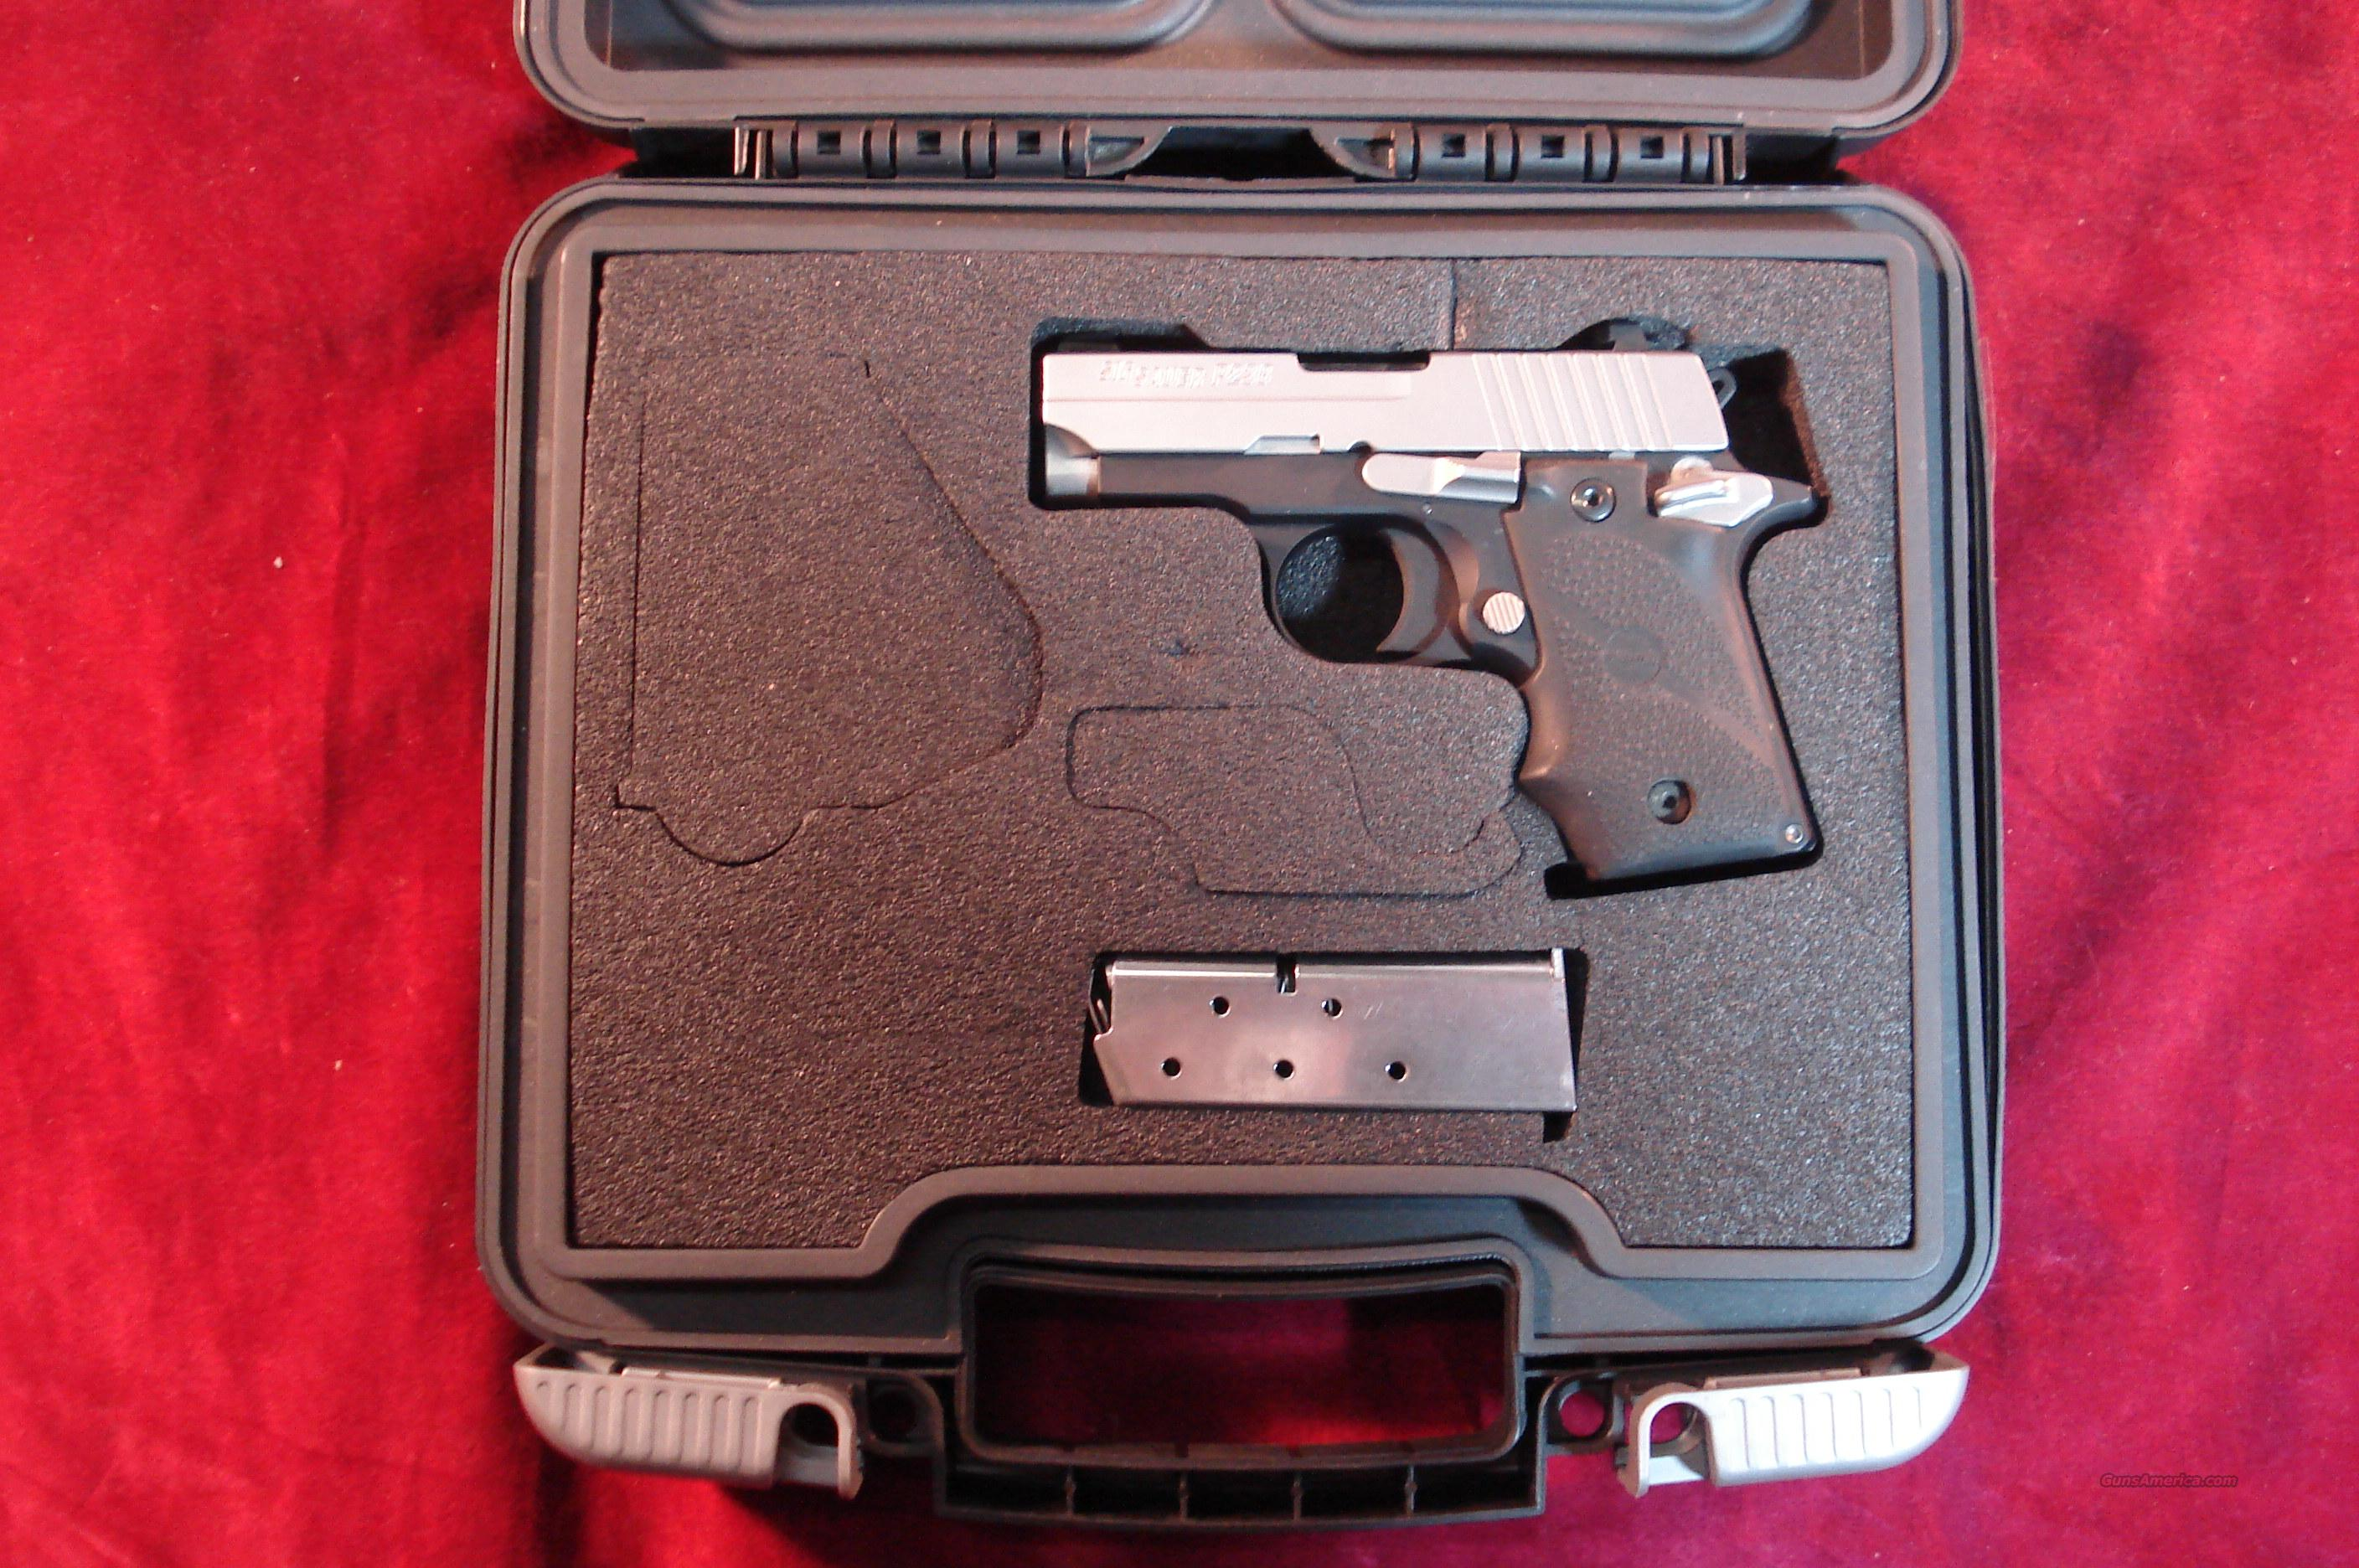 SIG SAUER P238 TWO TONE W/ NIGHT SIGHTS USED  Guns > Pistols > Sig - Sauer/Sigarms Pistols > P238